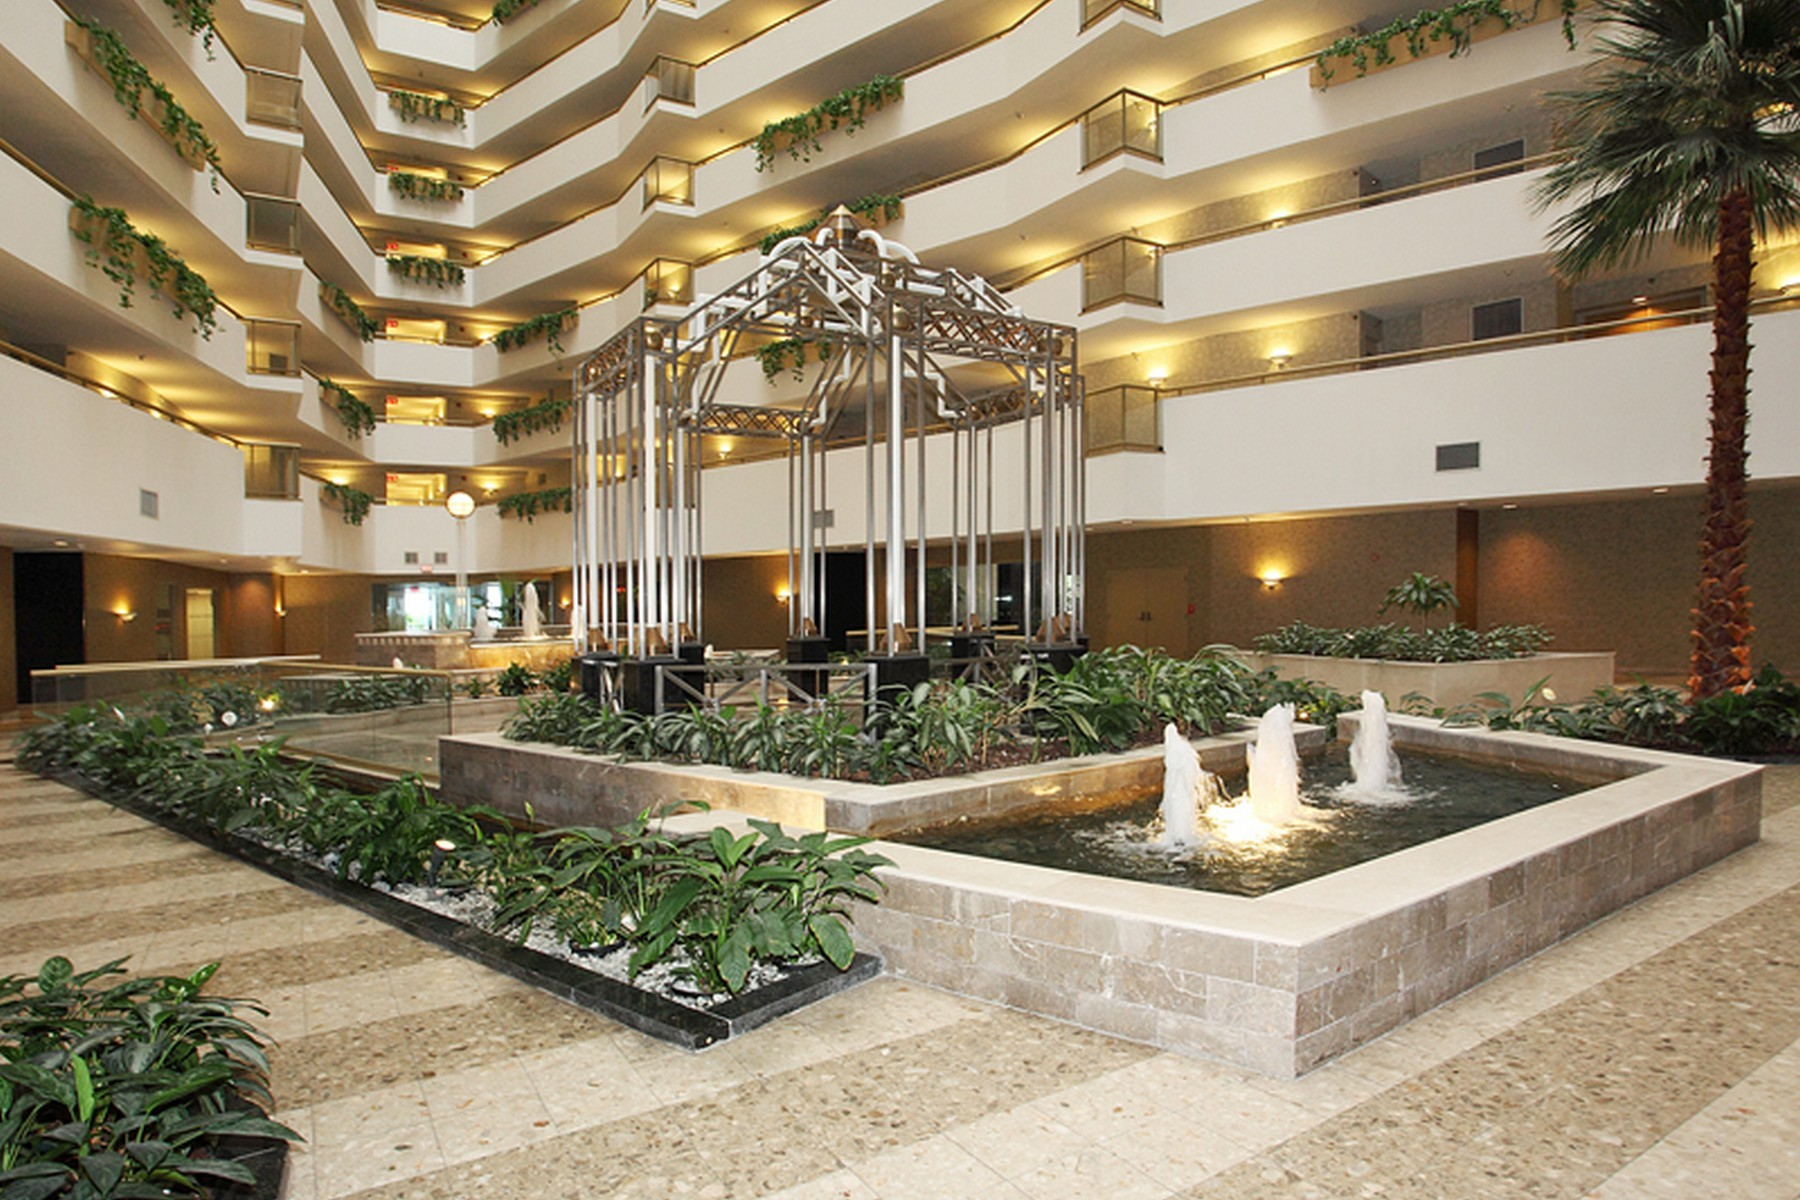 Condominium for Sale at The Atrium 1512 Palisade Avenue, #PHL, Fort Lee, New Jersey, 07024 United States